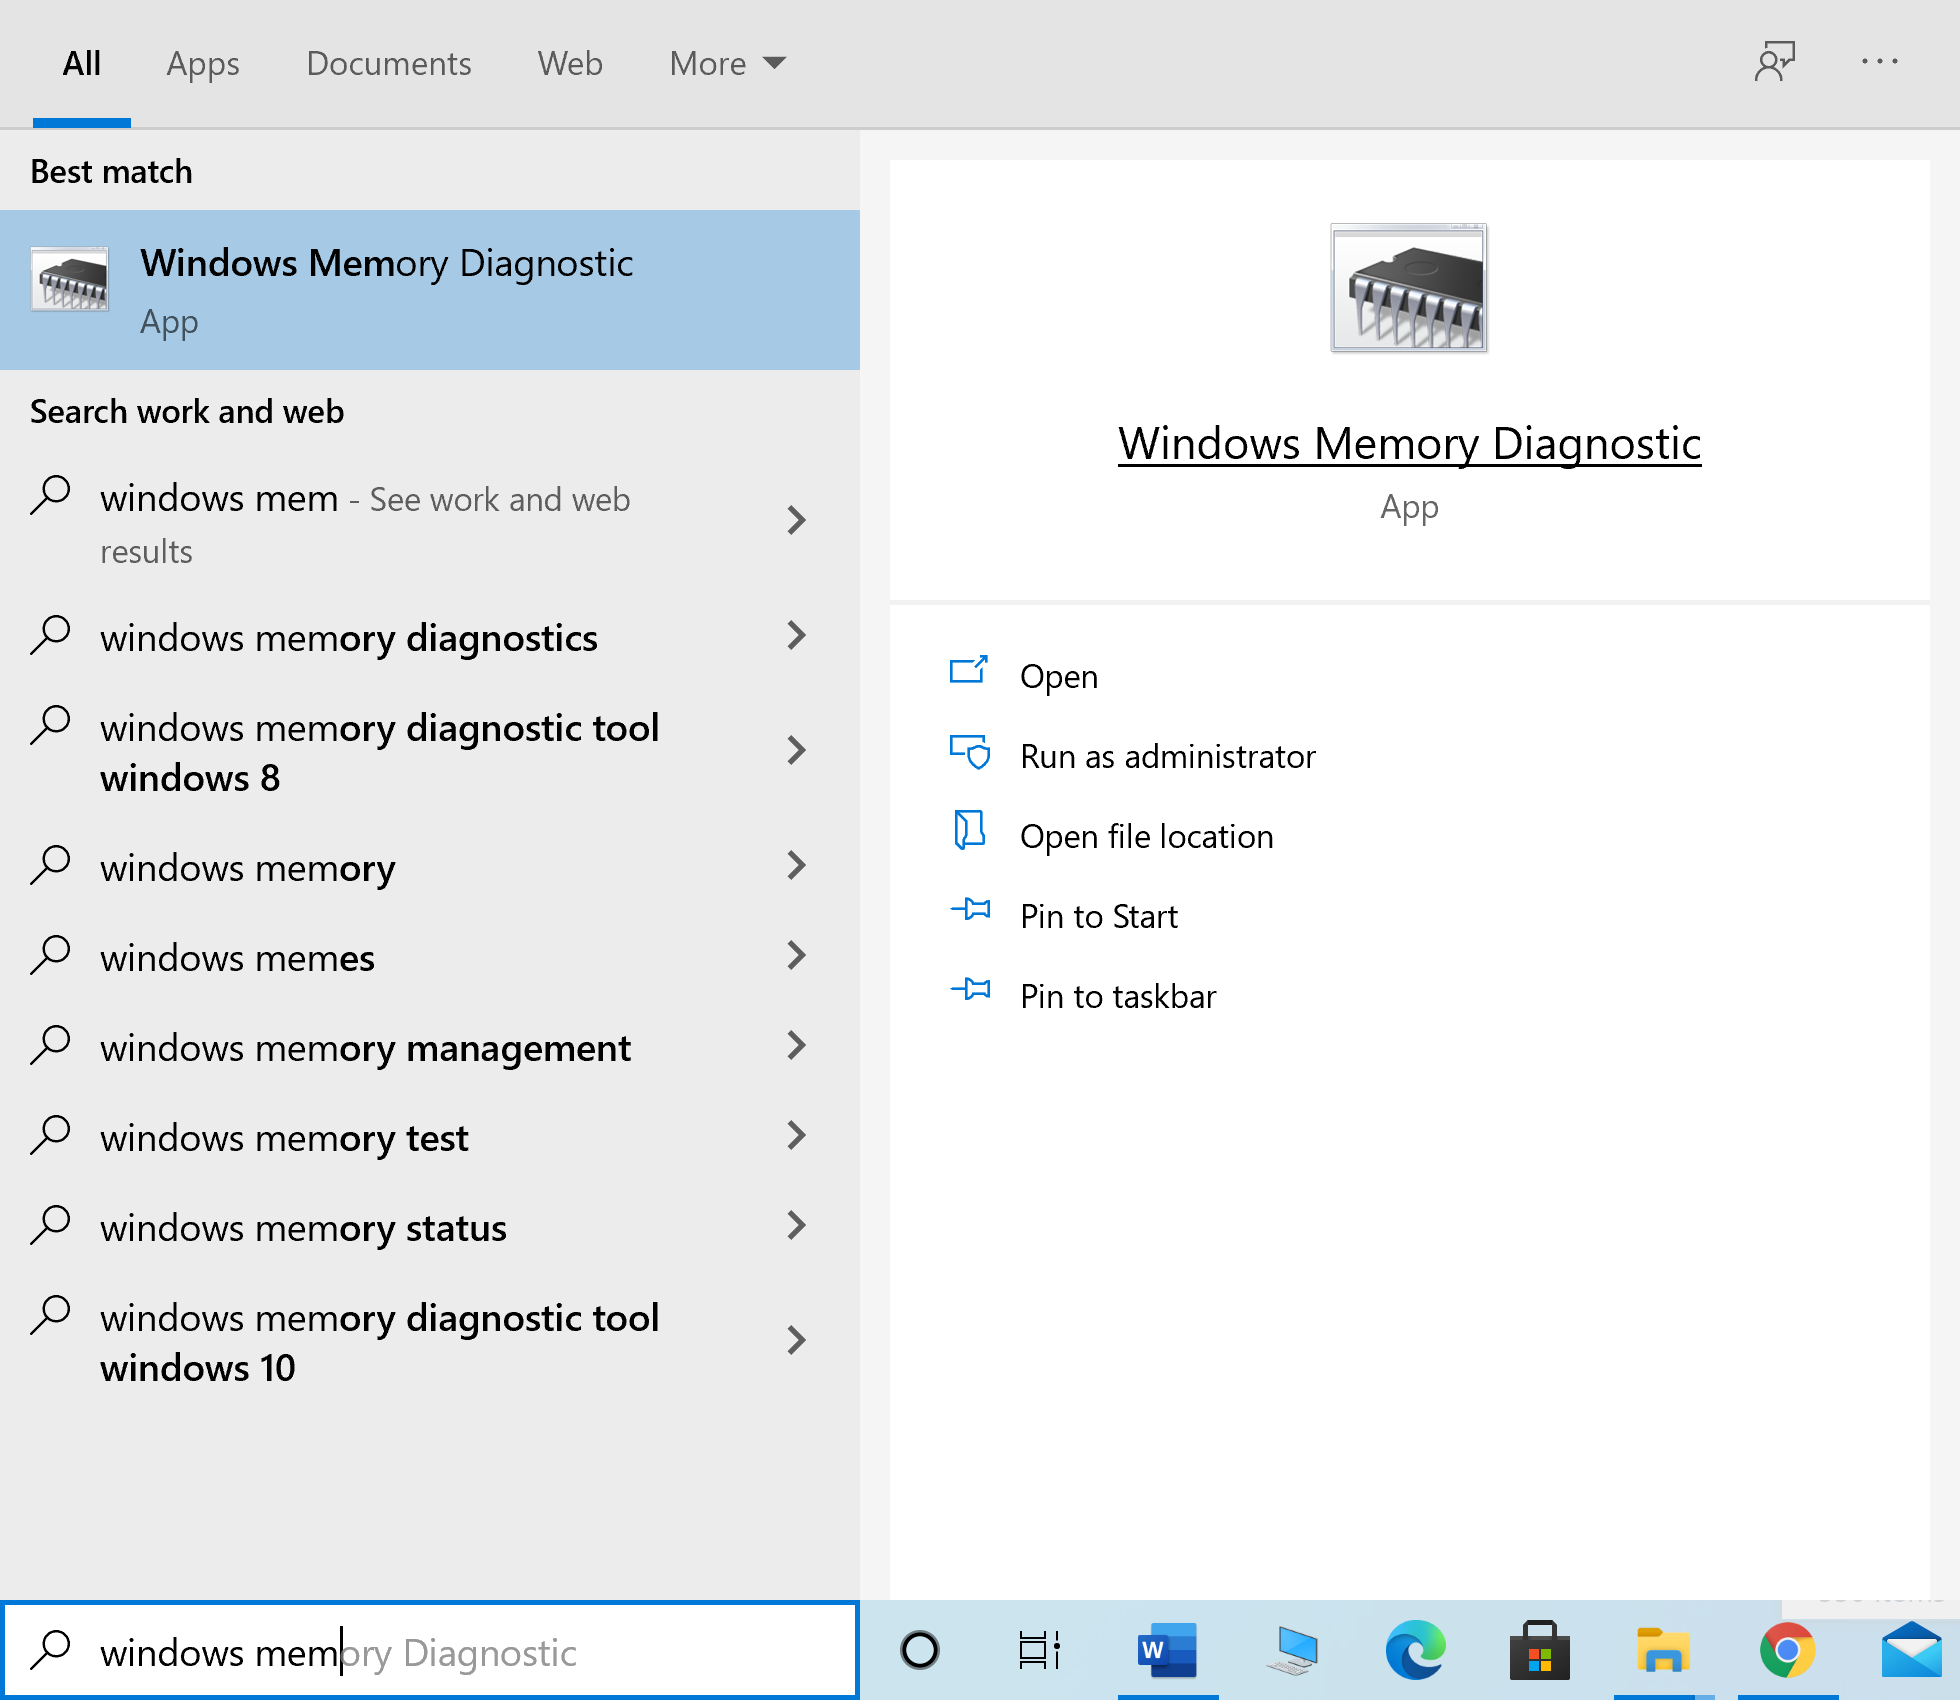 Type Windows Memory Diagnostic into Windows search and launch it from the search result